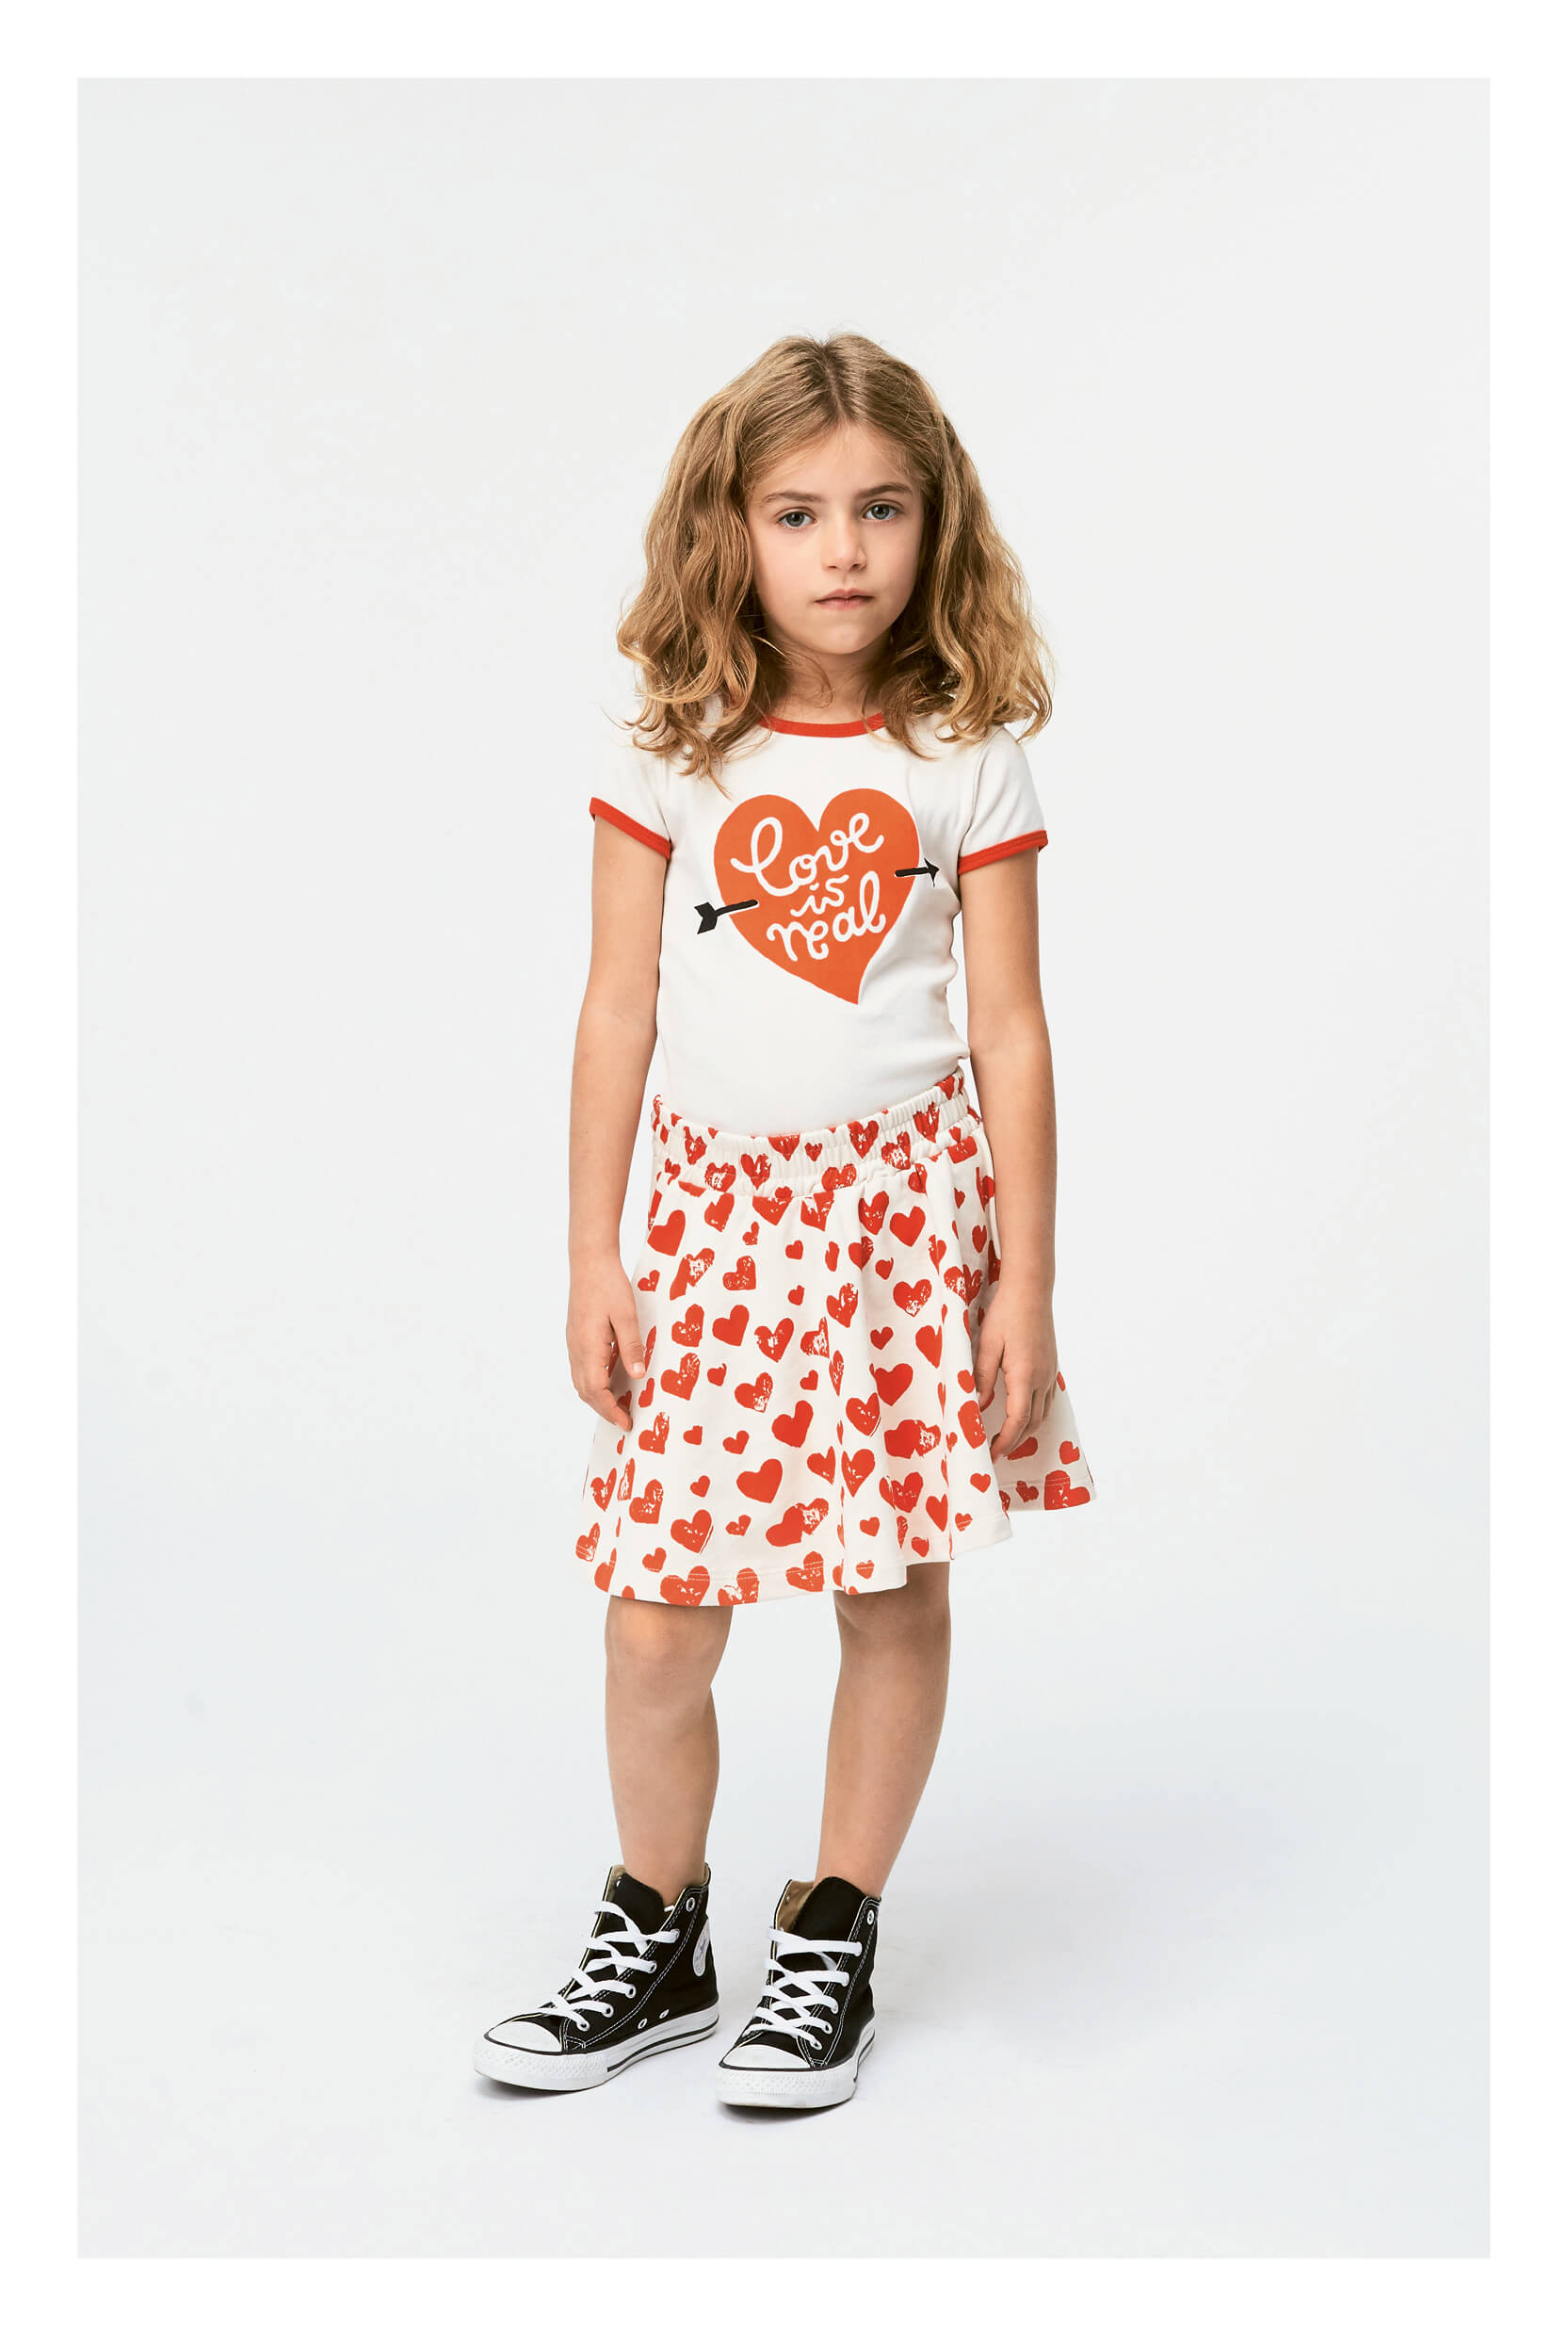 Toddler Girls' Jeans, Dresses, Shirts & Clothes | Levi's® US